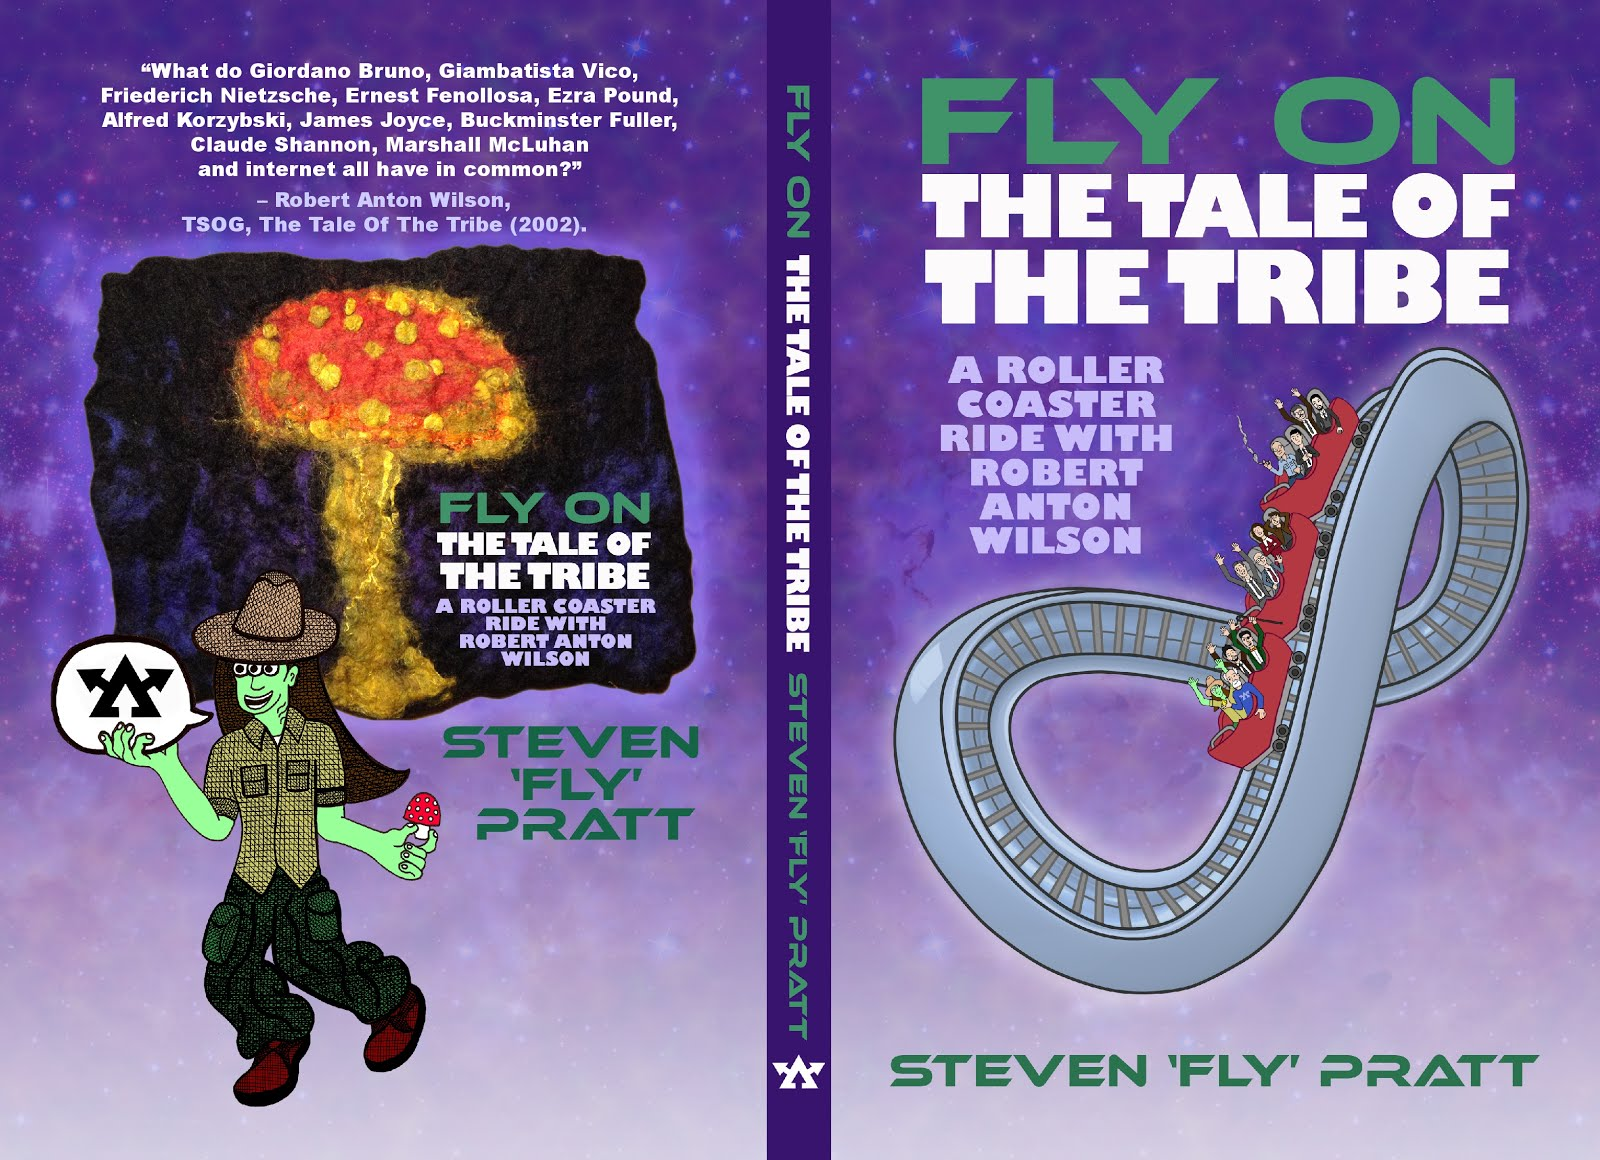 Fly On The Tale Of The Tribe